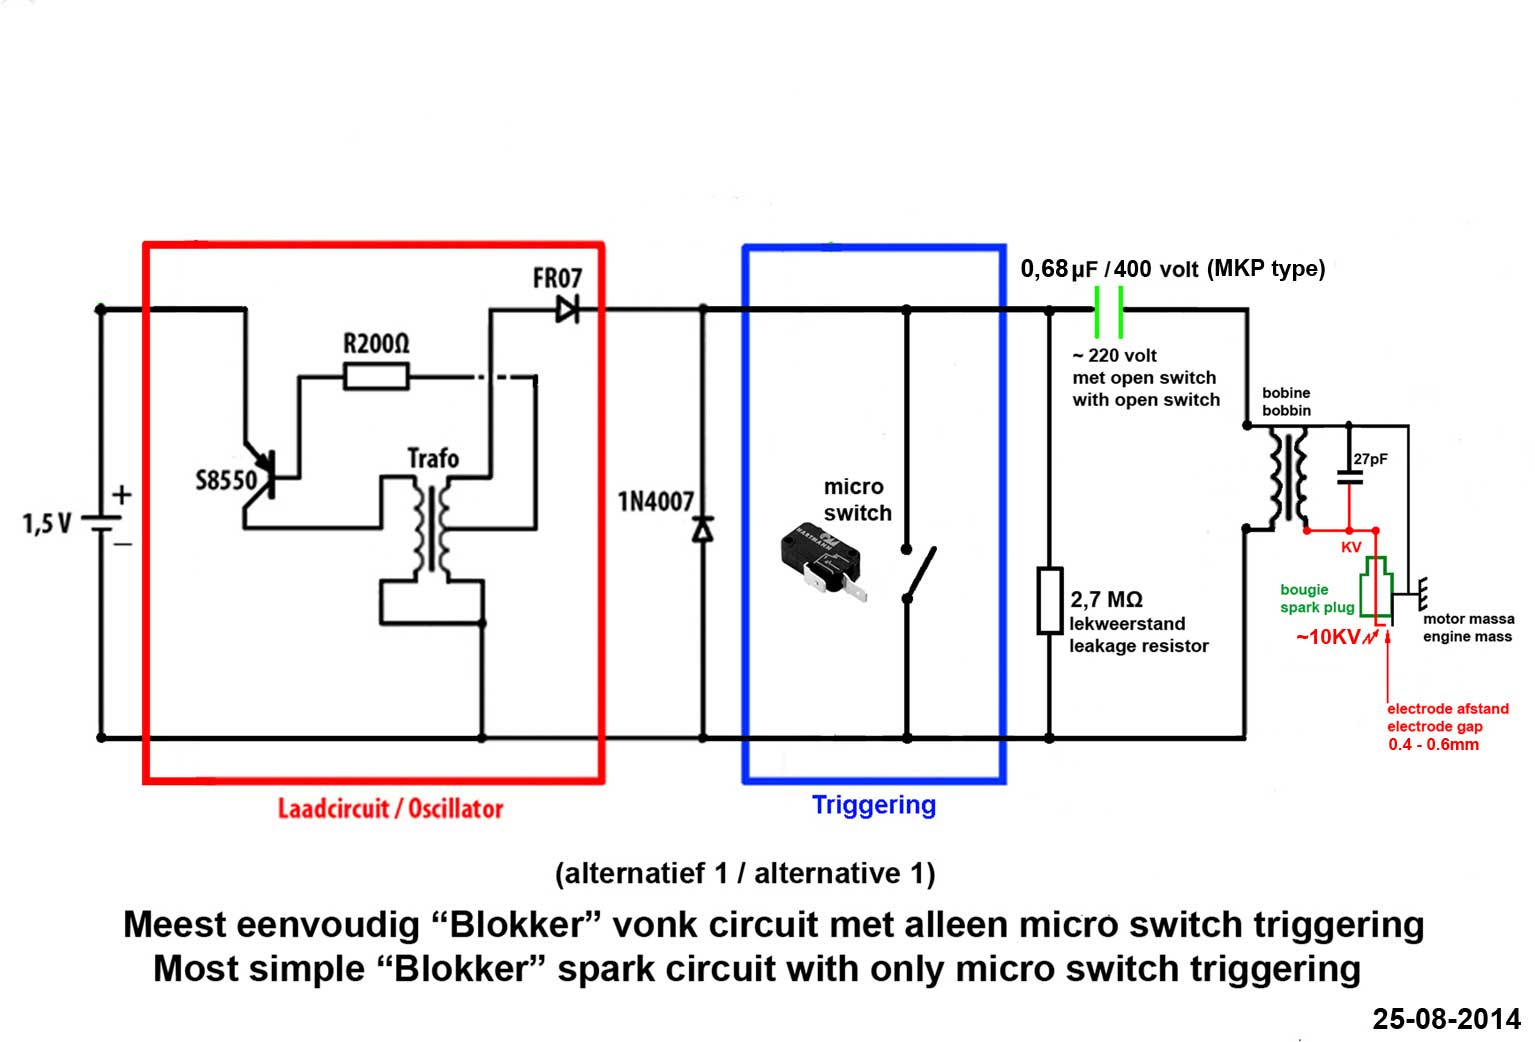 hight resolution of introduction a good spark is crucial to let an ic engine run well andblokker schakeling microswi jpg